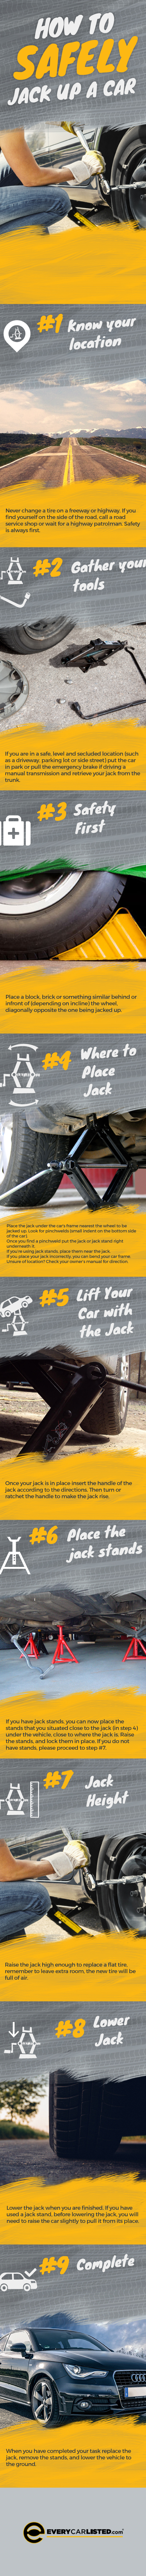 how to safely jack up a car